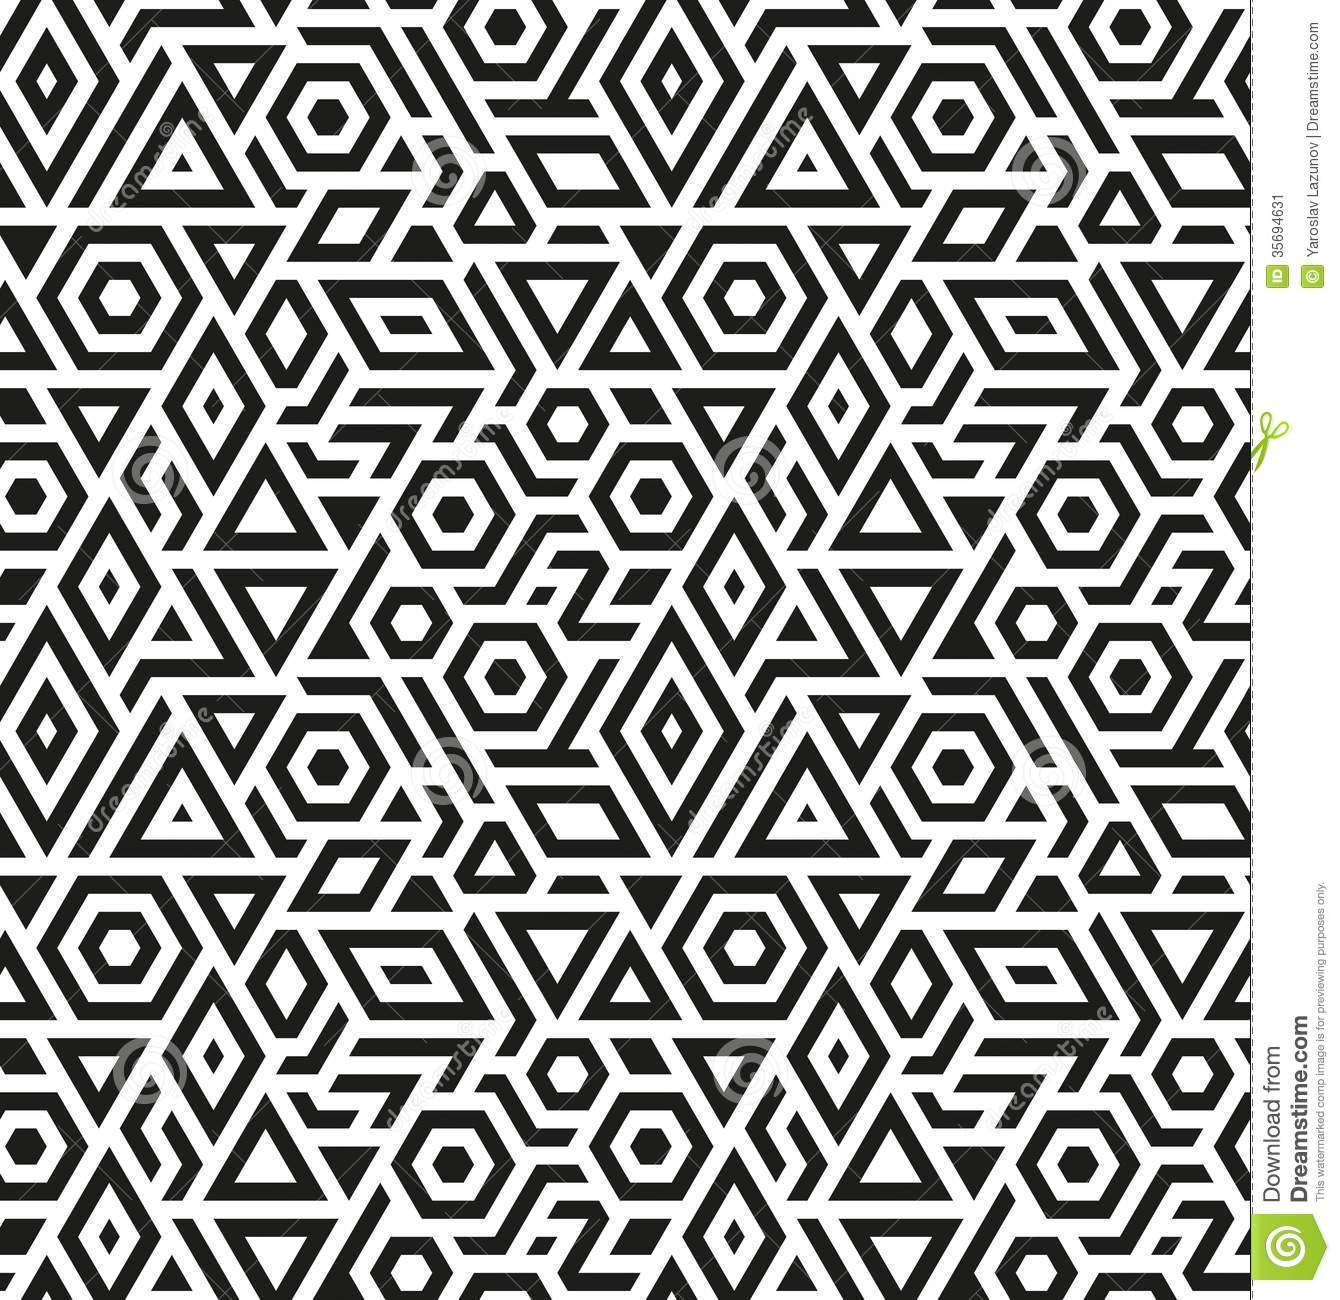 15 Vector Seamless Geometric Patterns Images